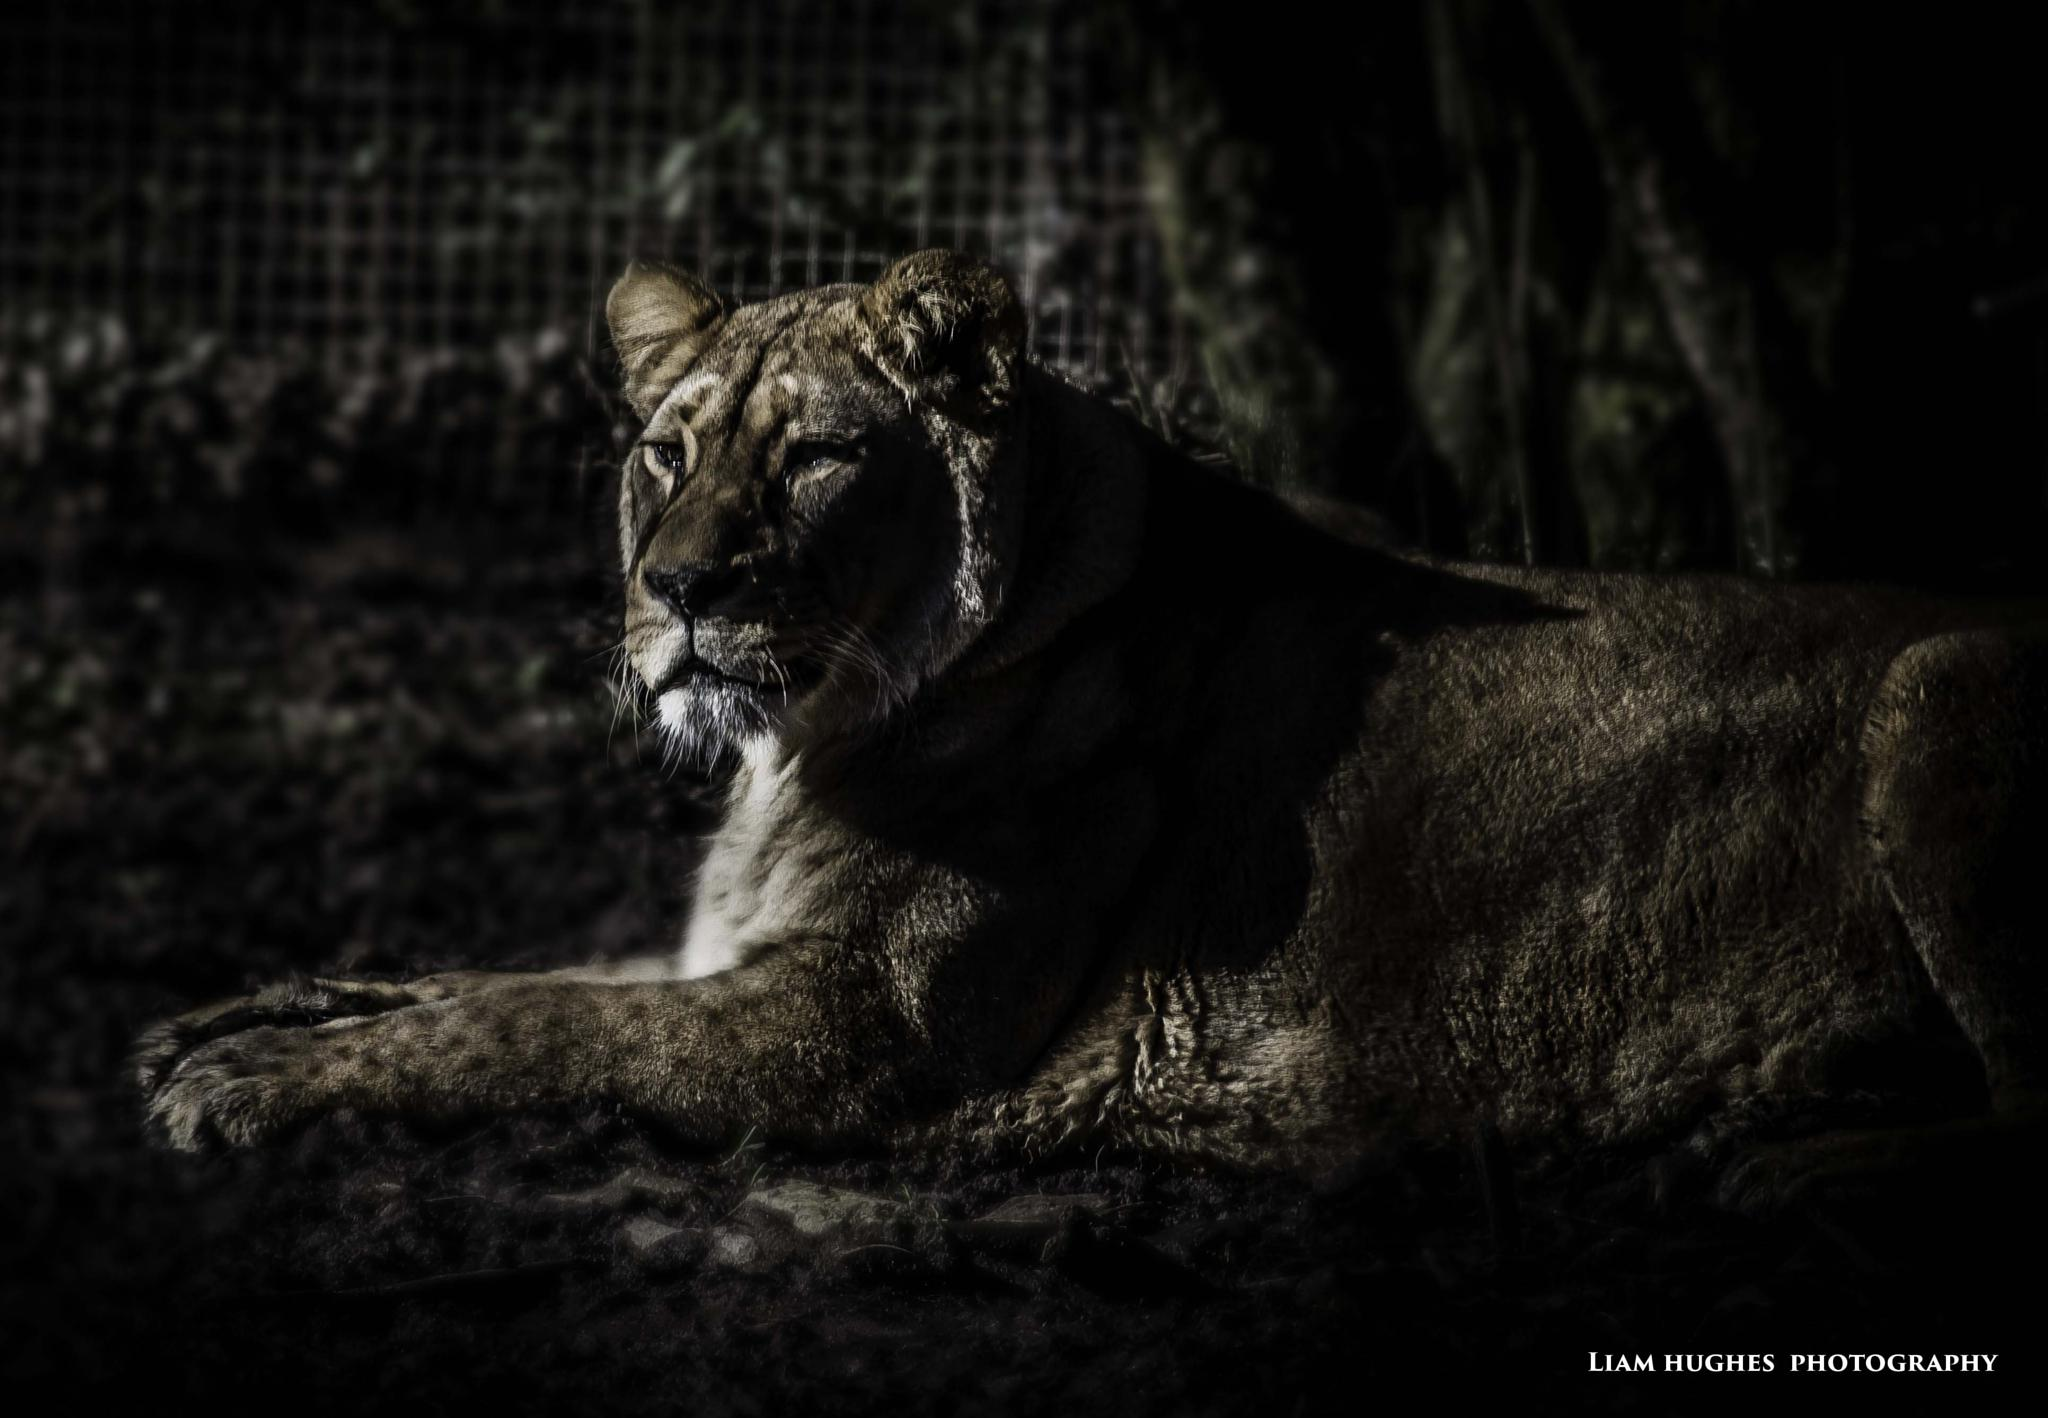 Queen of the zoo by Liam hughes